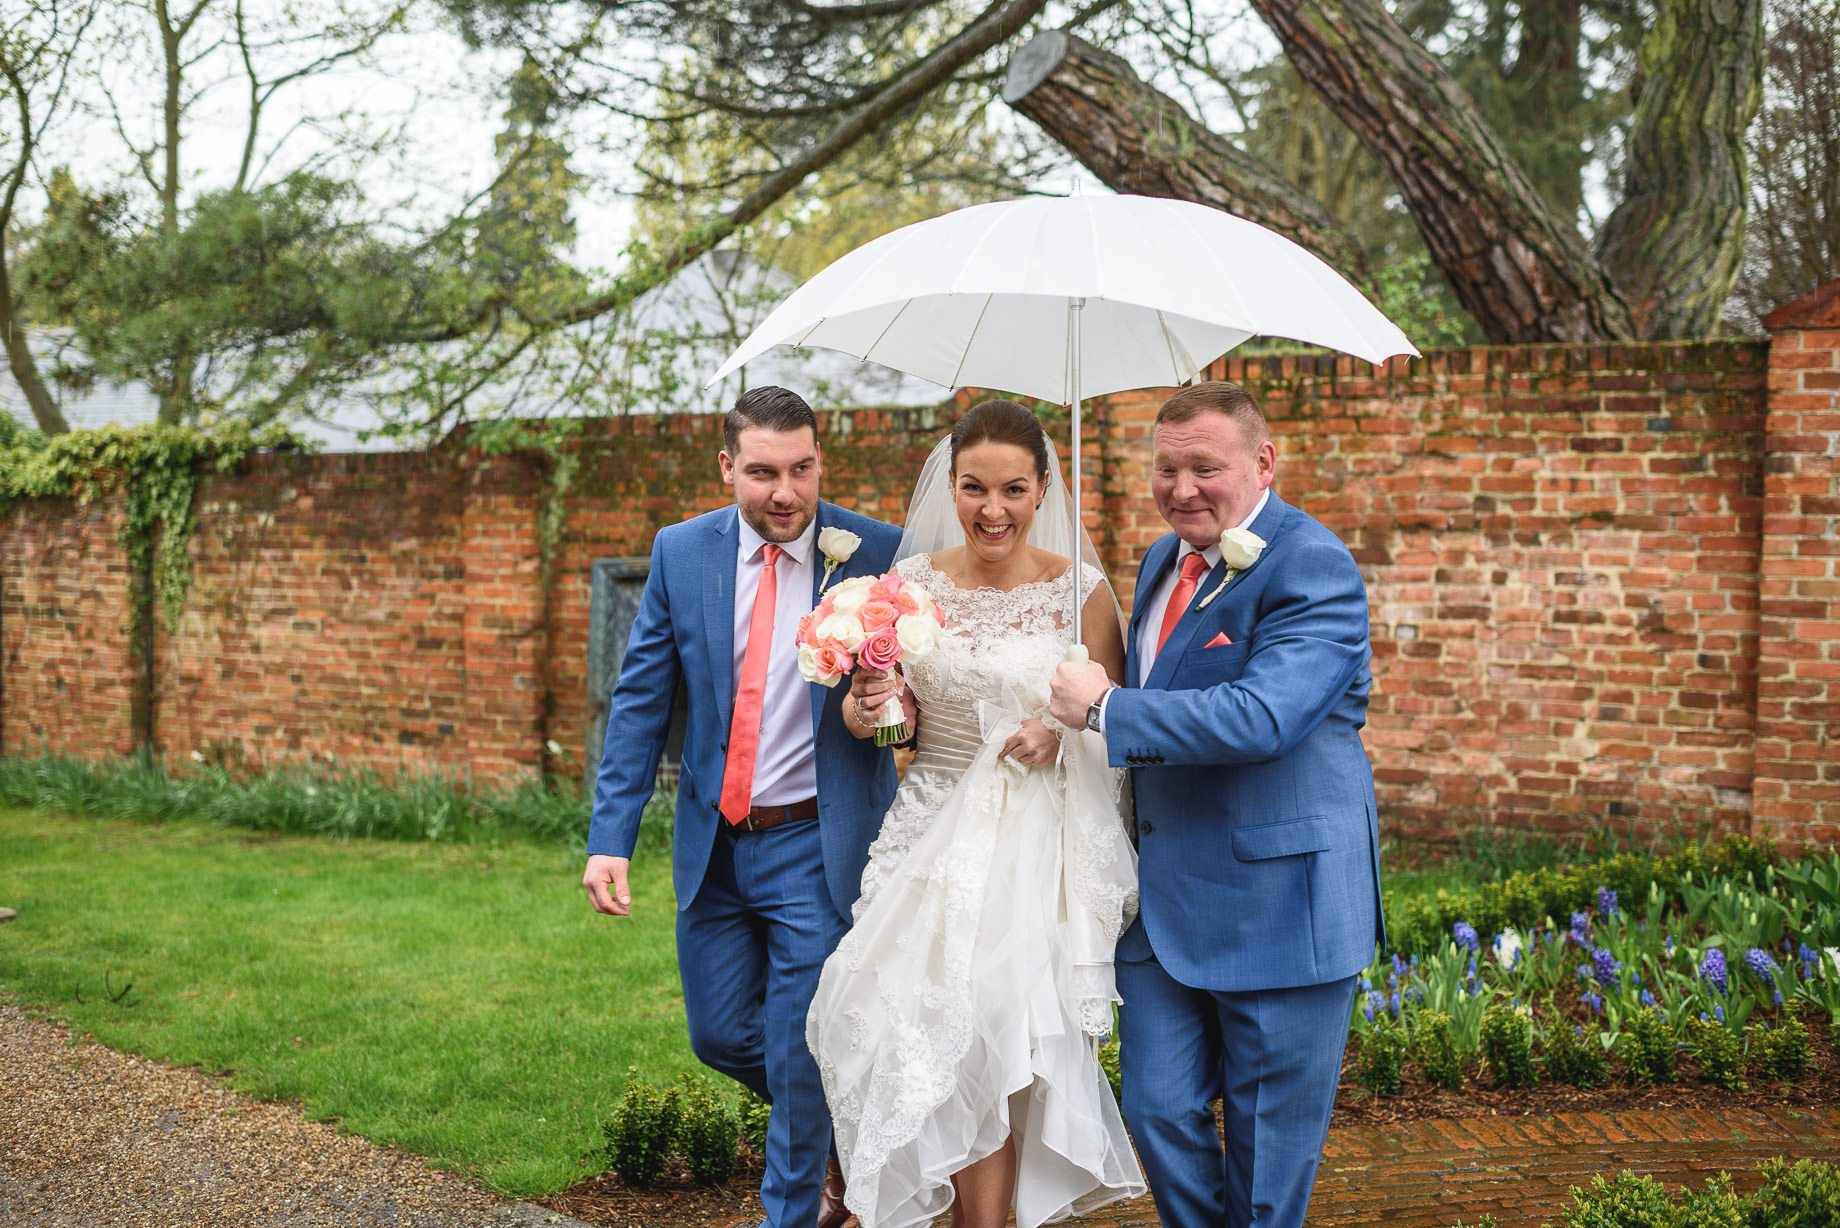 Best wedding photography by Guy Collier - Sheri and Chris (49 of 121)